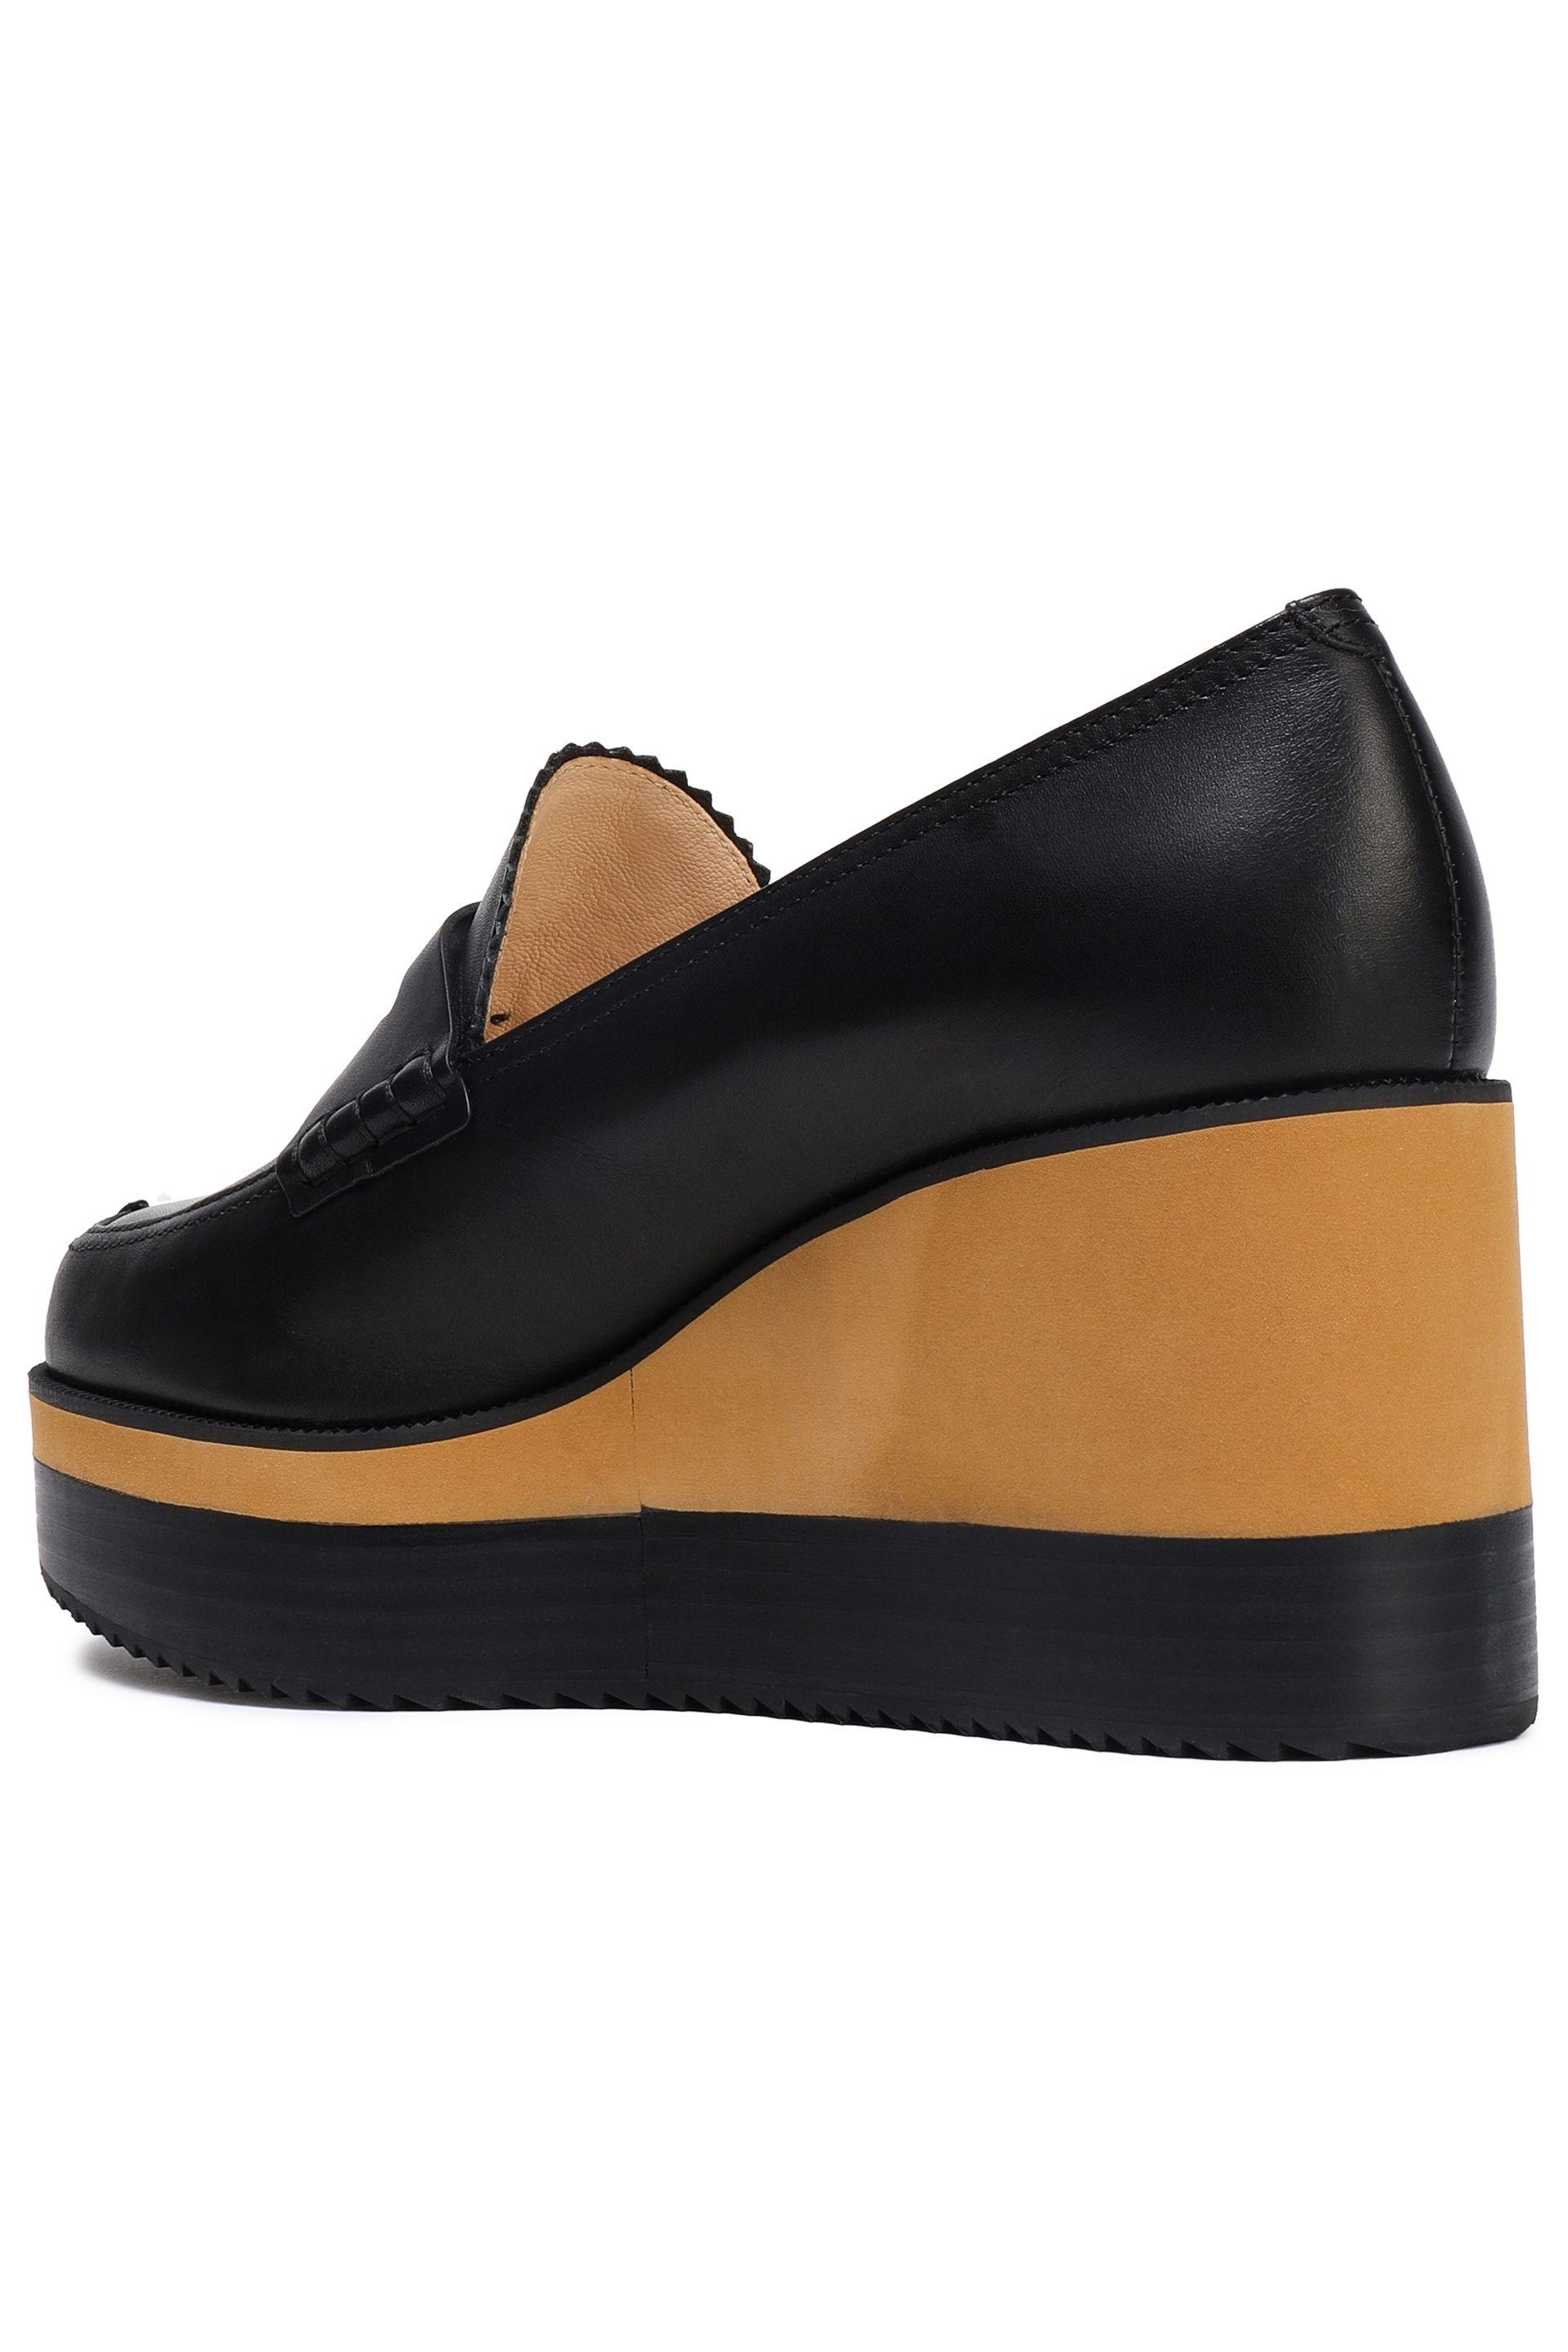 cd4c9d22c2b Jil Sander Navy - Woman Leather Wedge Loafers Black - Lyst. View fullscreen